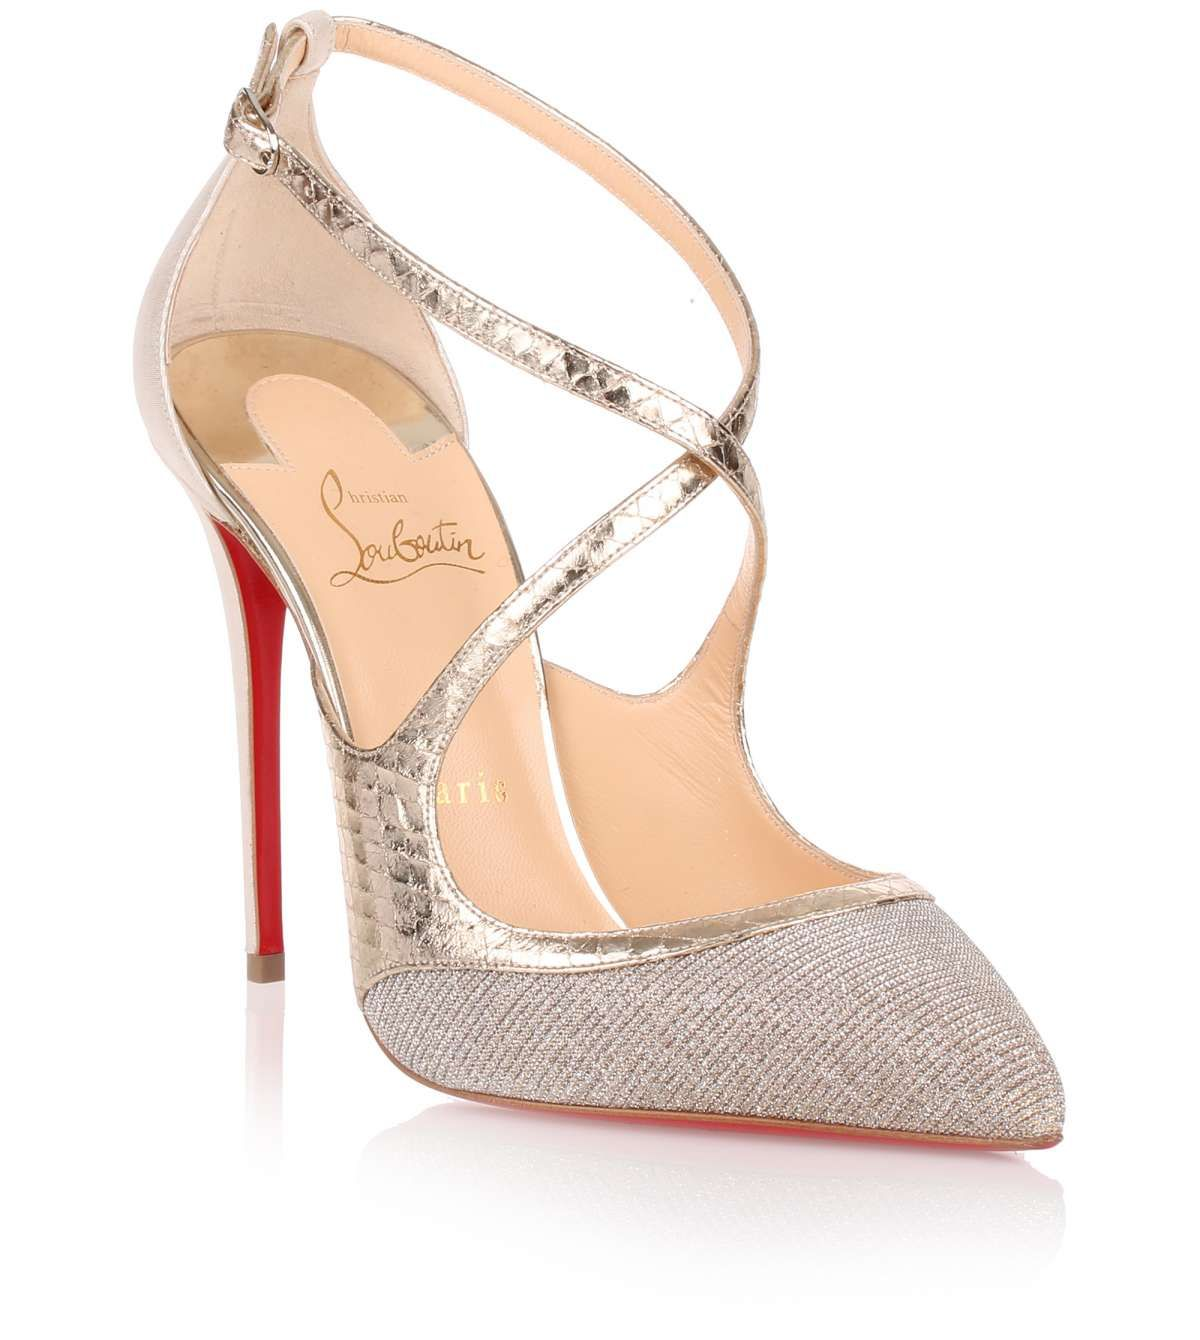 Christian Louboutin Mary Jane Zapatillas gris